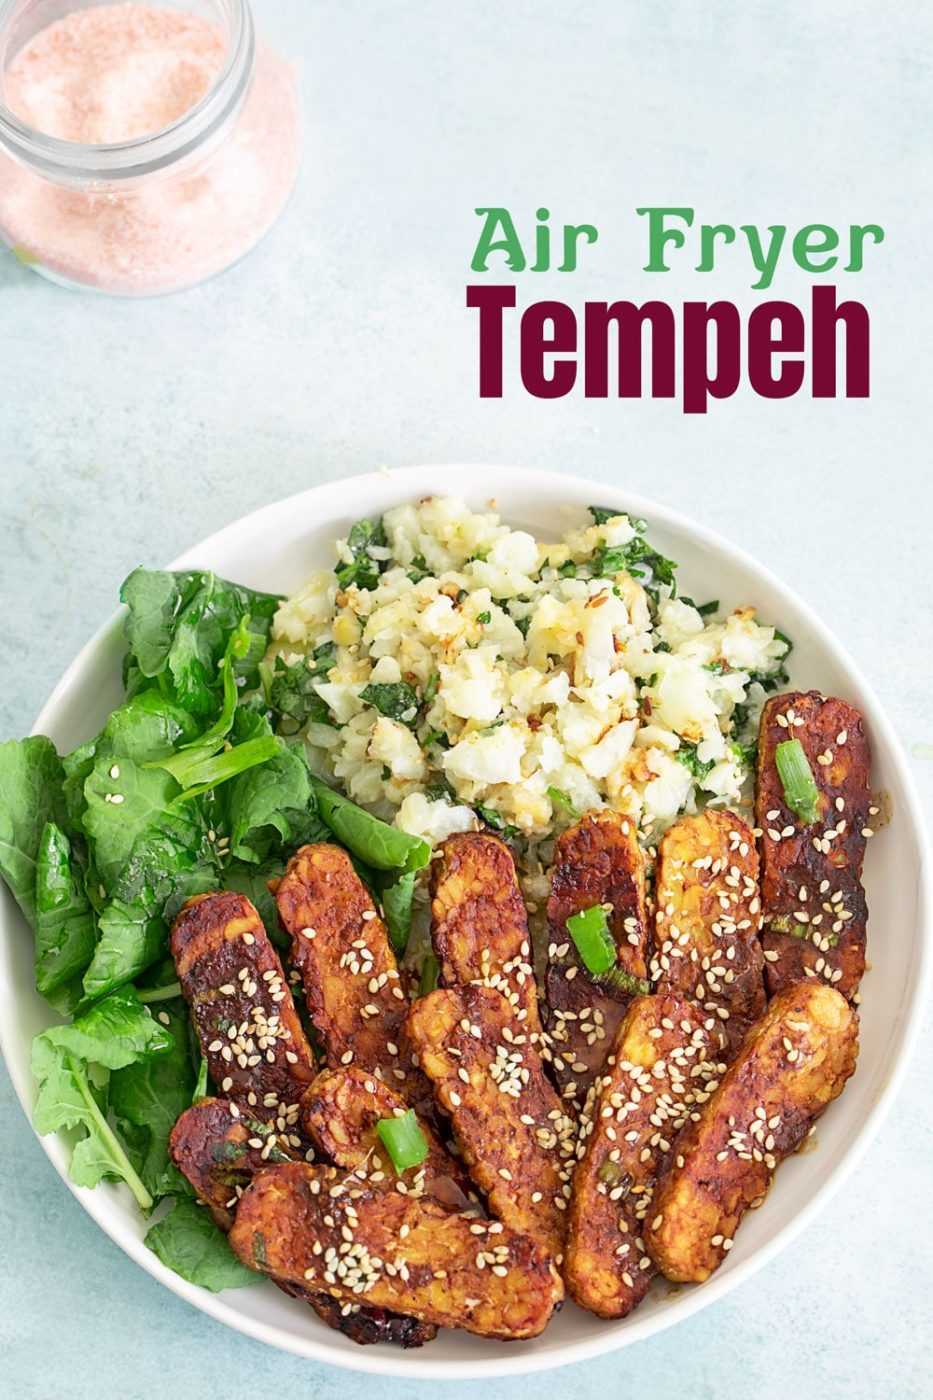 Top view of a vegan buddha bowl with air fryer tempeh, greens and rice